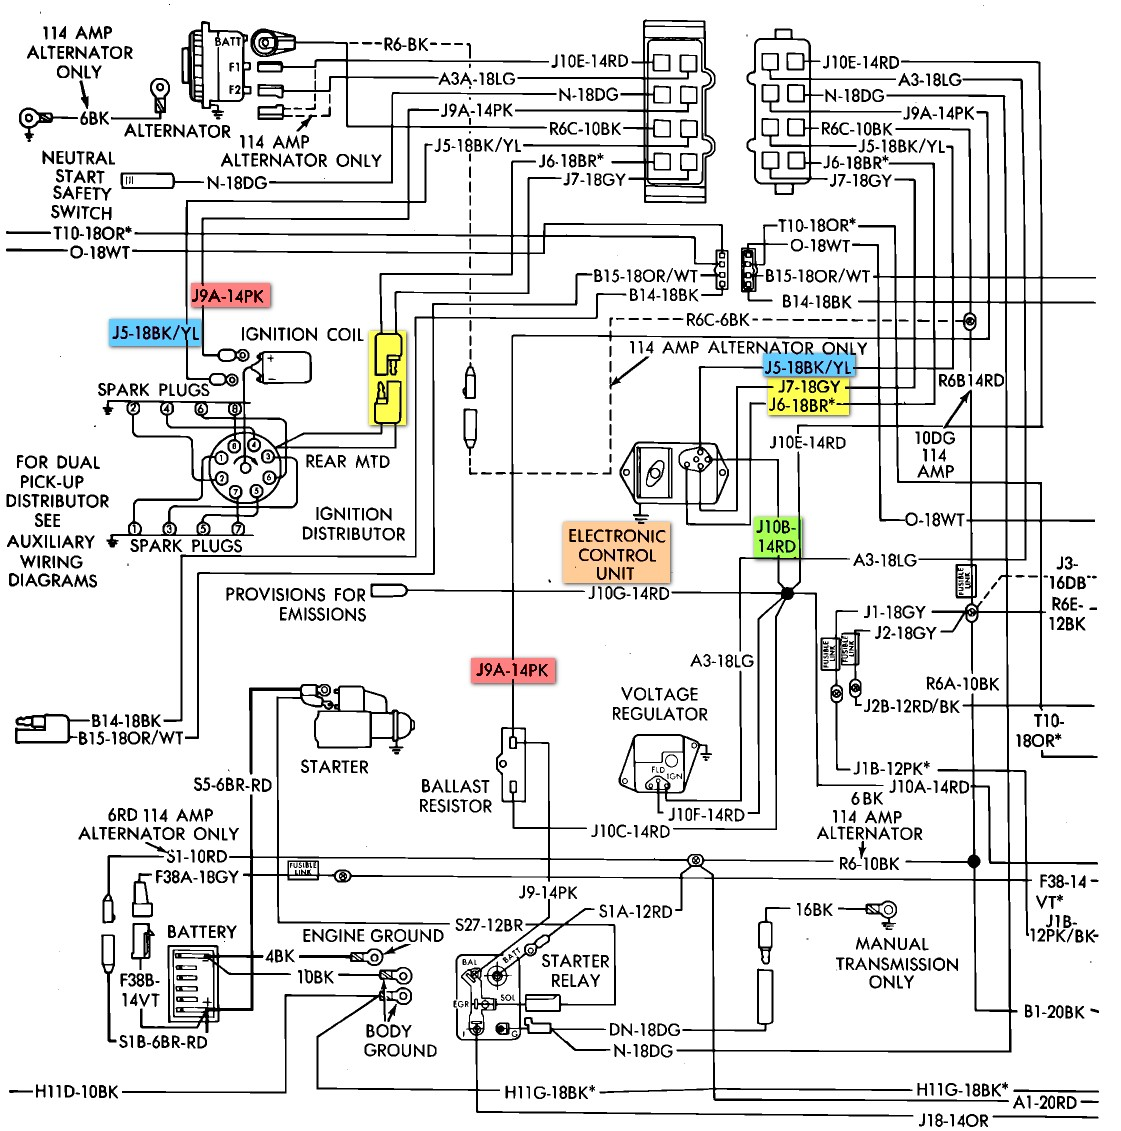 1975 winnebago wiring diagram information of wiring diagram u2022 rh infowiring today Winnebago Manuals and Diagrams Winnebago Electrical Diagrams